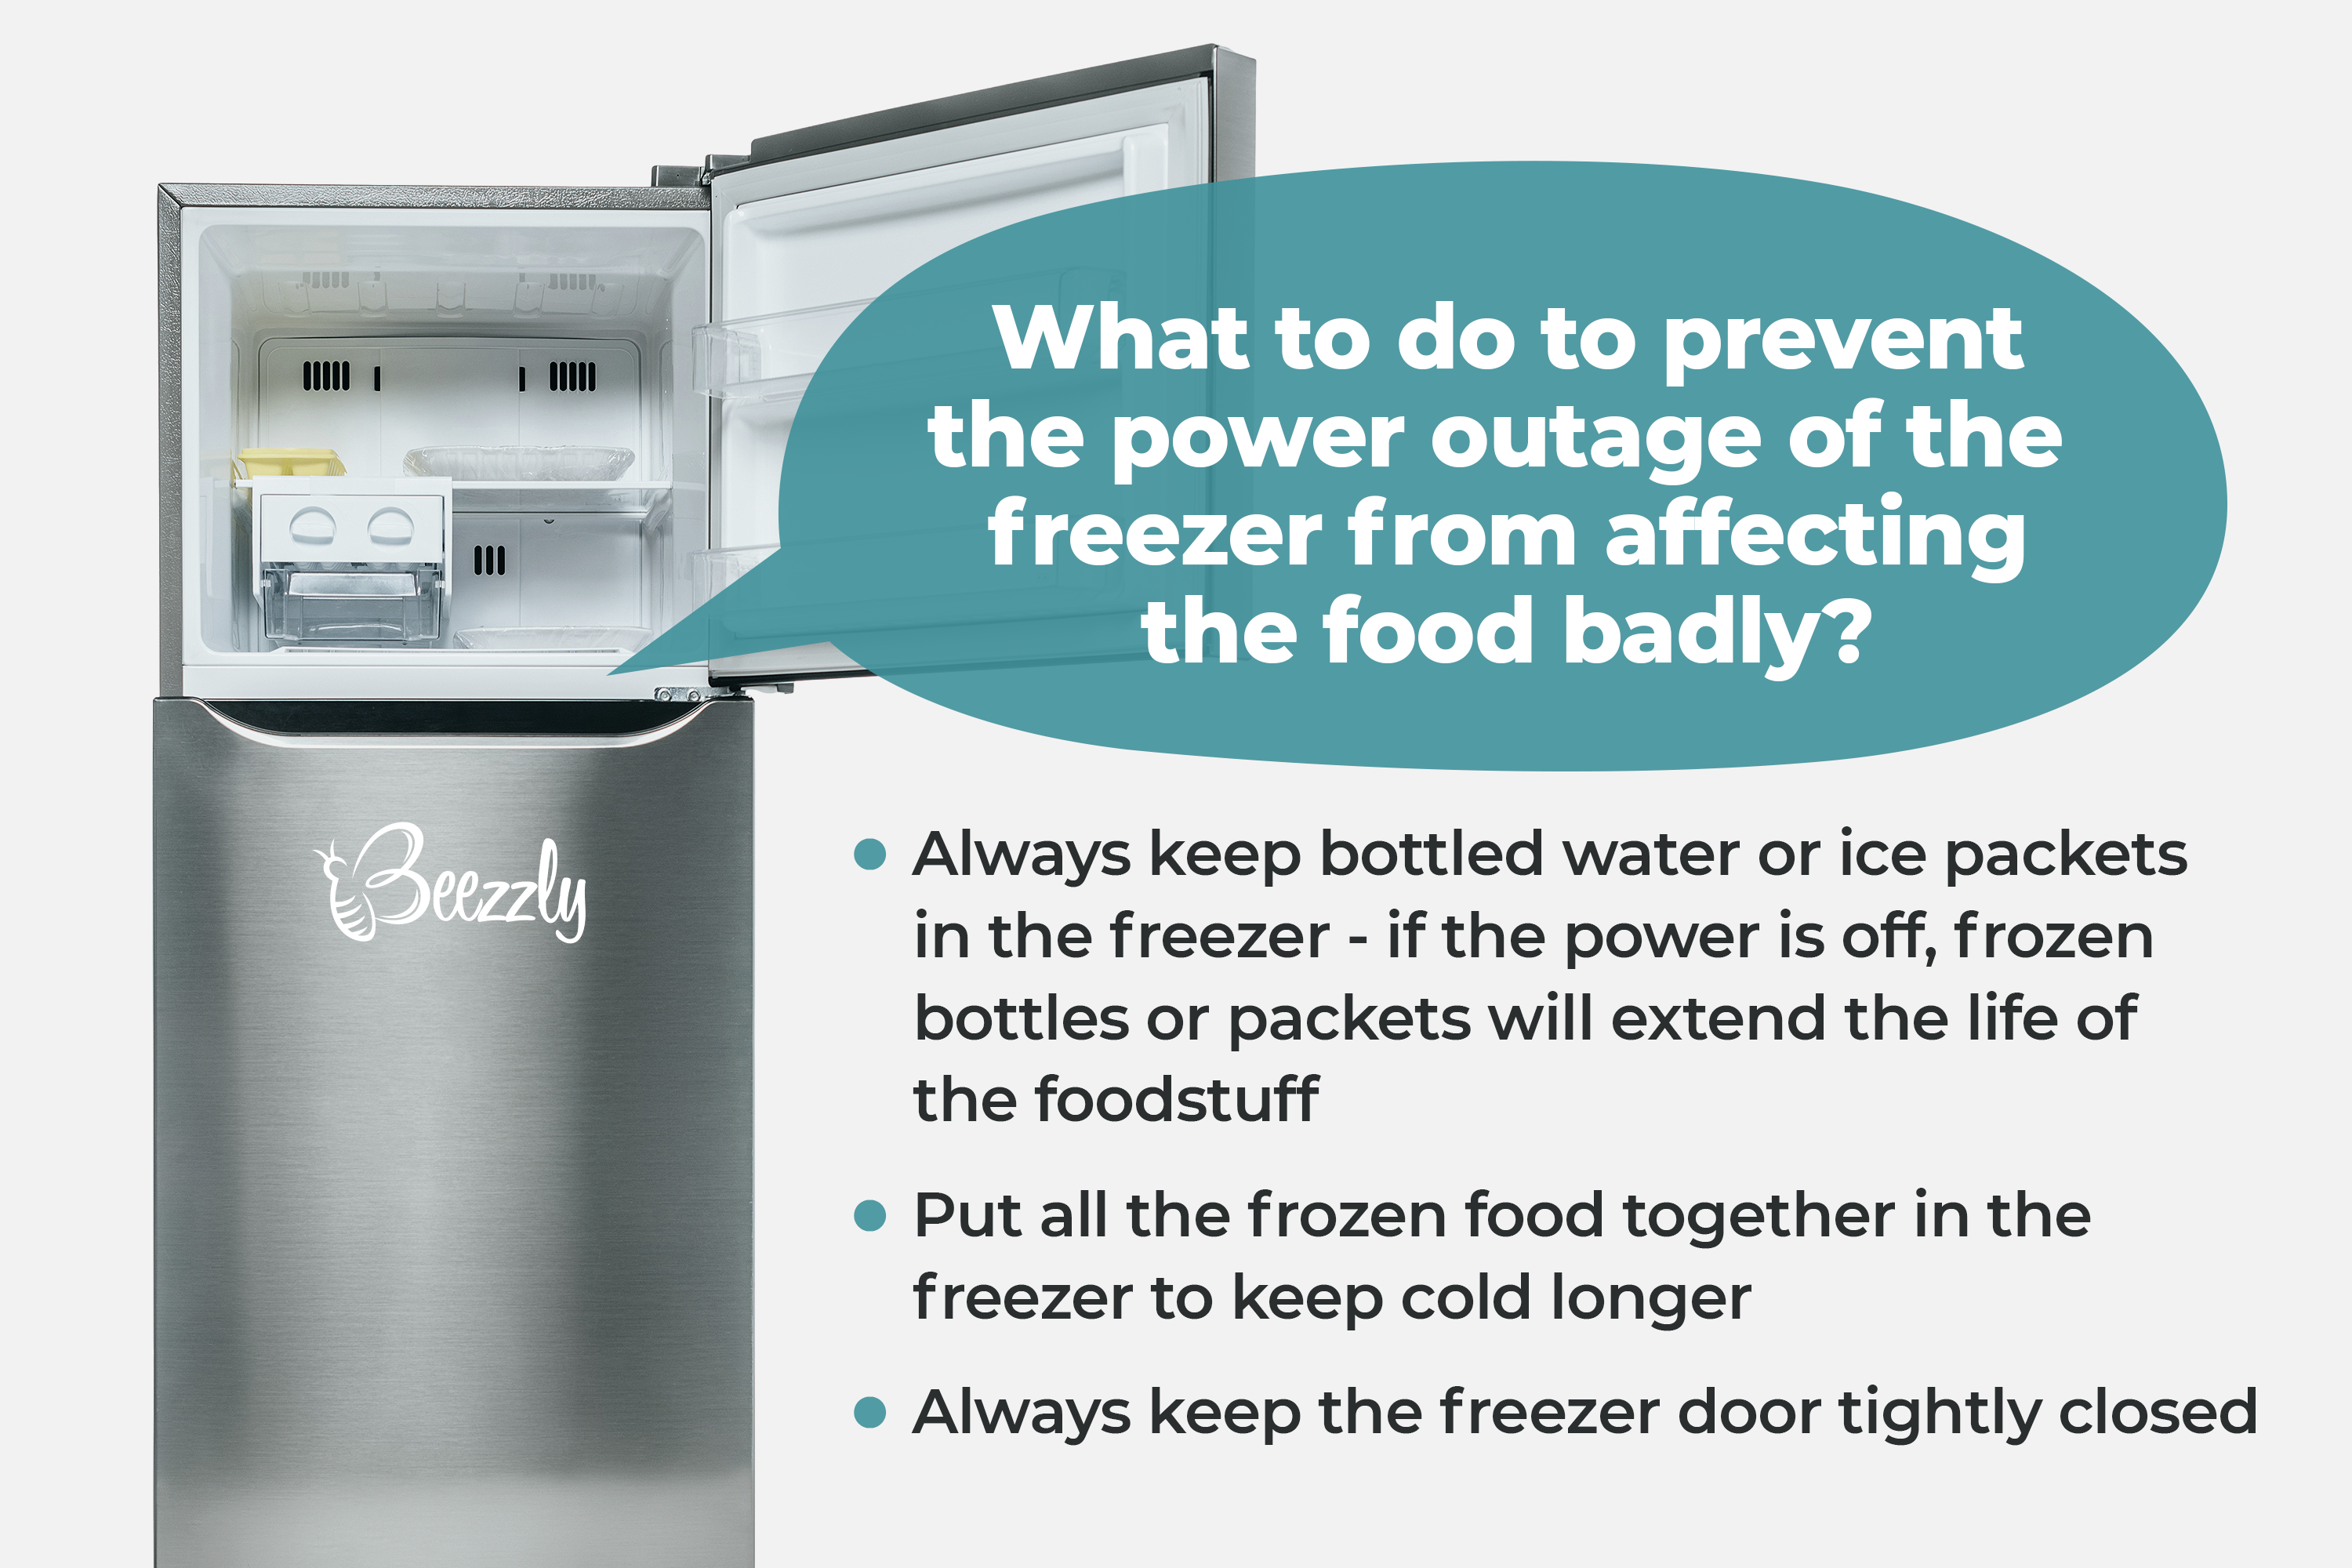 What to do to prevent the power outage of the freezer from affecting the food badly